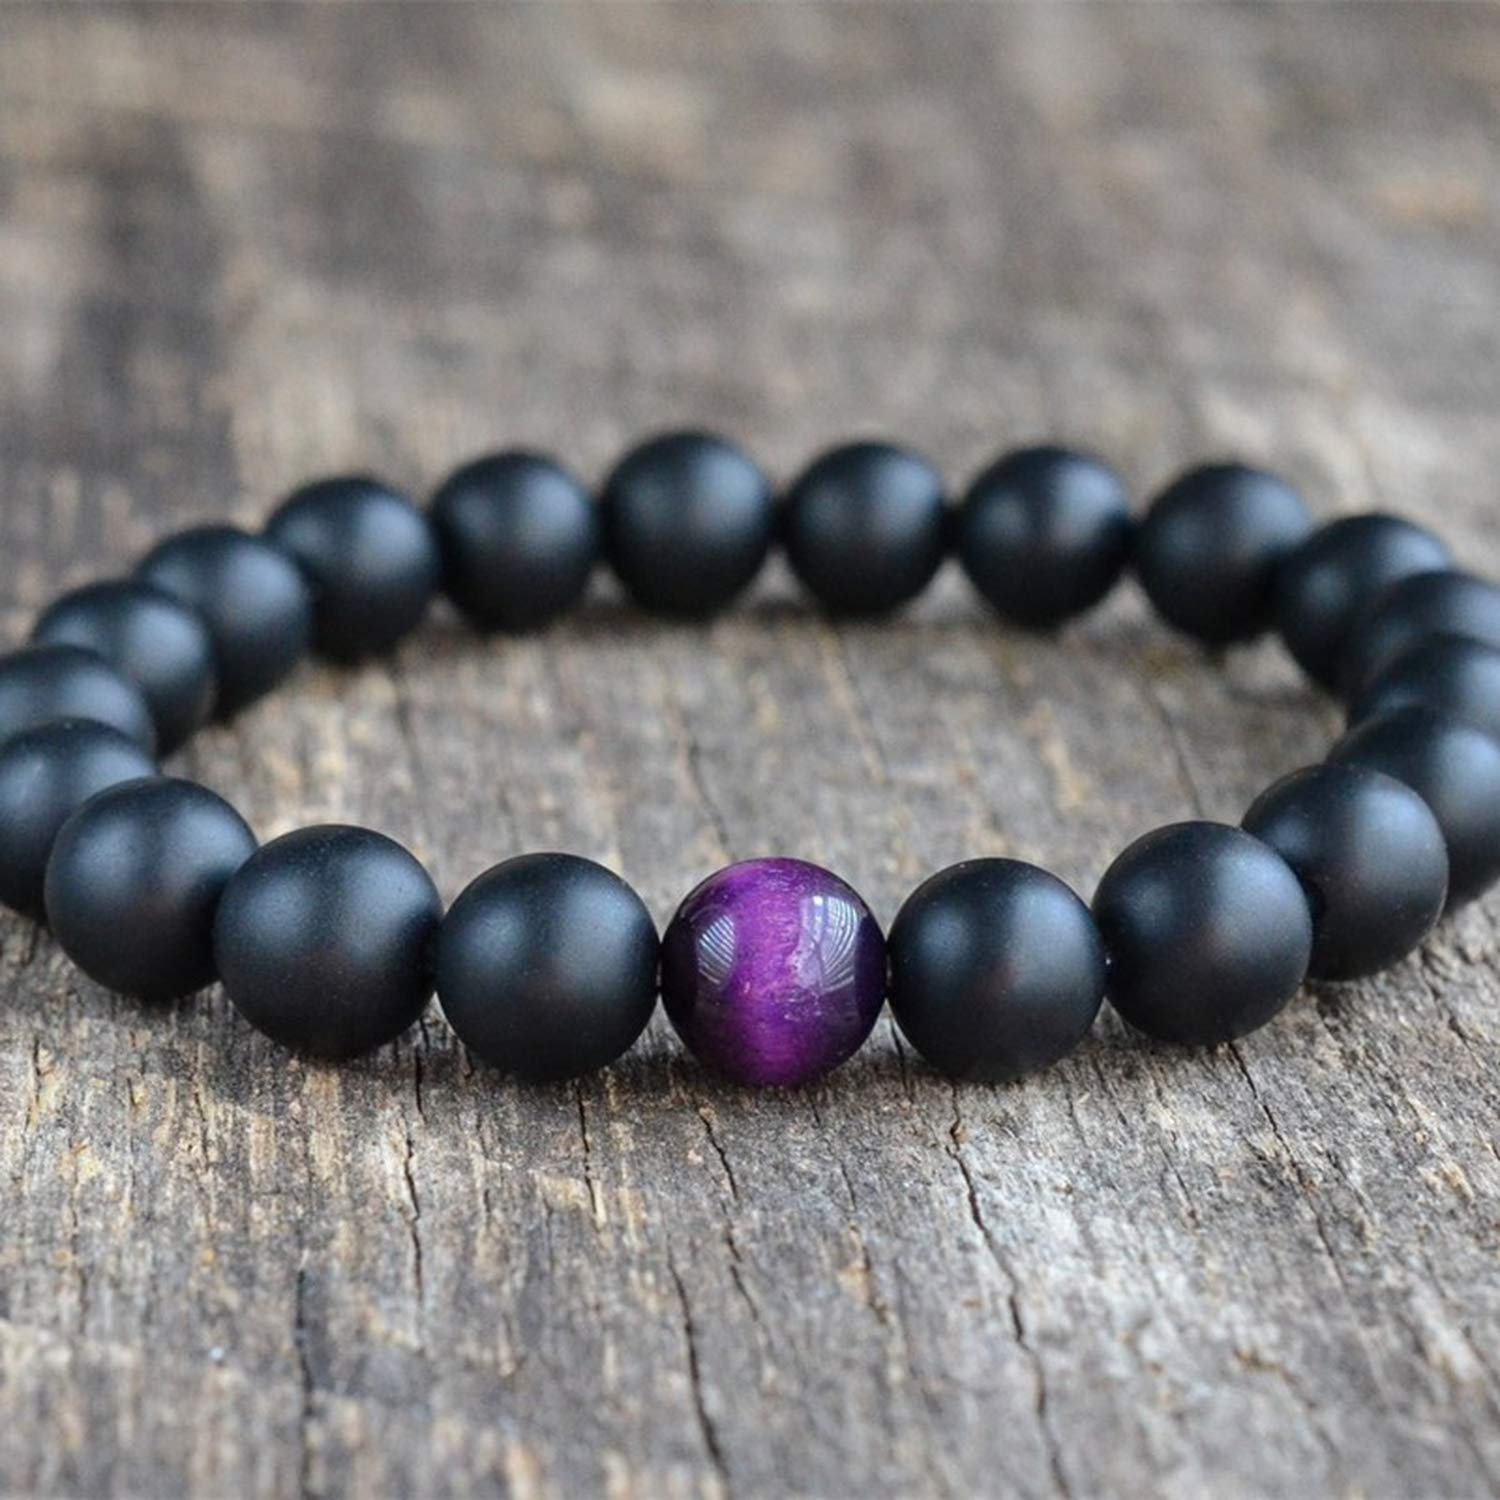 Magic Magic Shop 8mm Matte Onyx Beads 10 Colors Fashion Natural Tiger Stone Bracelets Bangles Jewelry